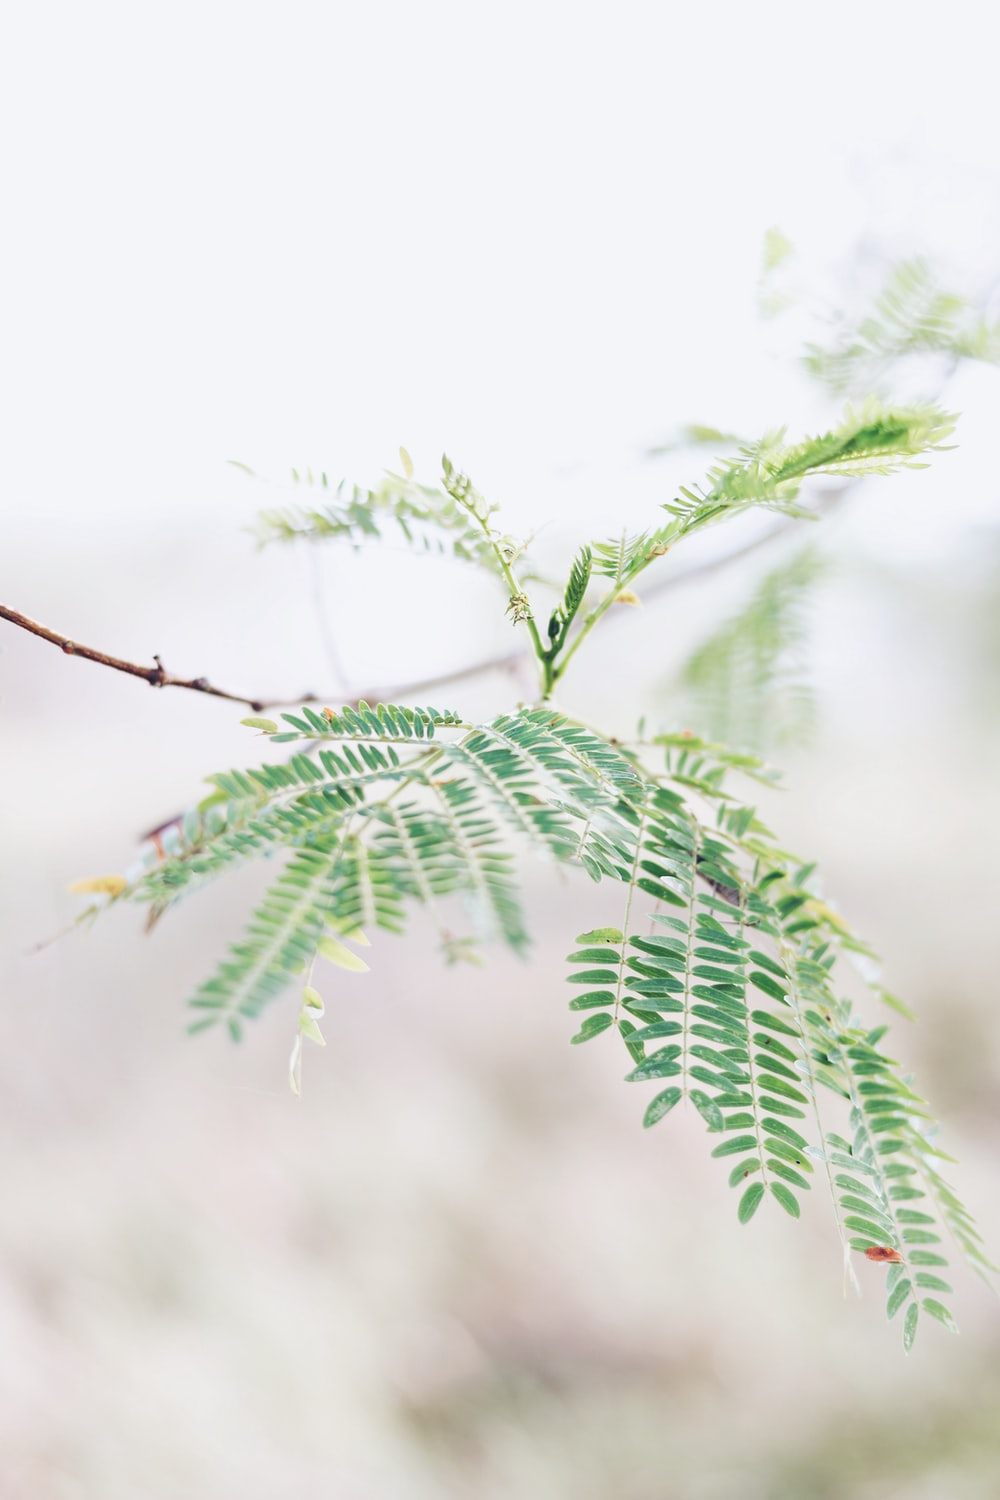 bokeh photography of green-leafed plant